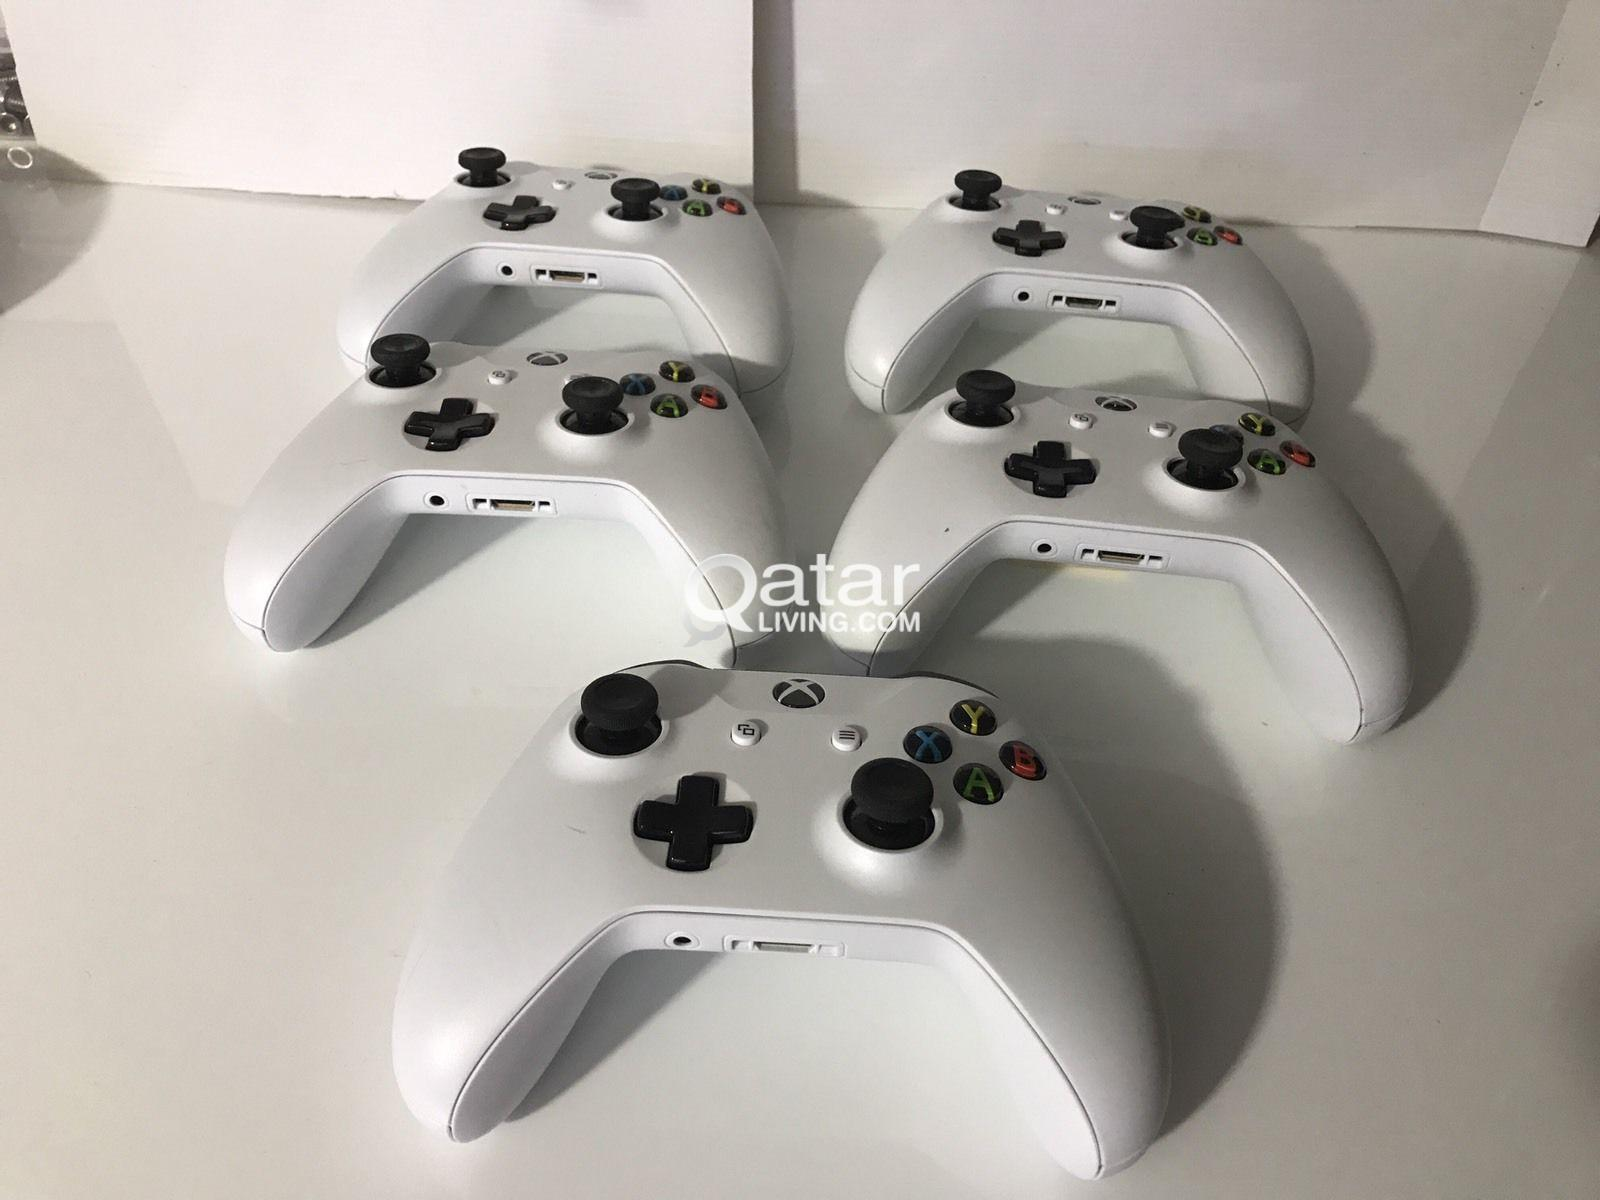 PS4, xbox one and 360 controller , kinect and other